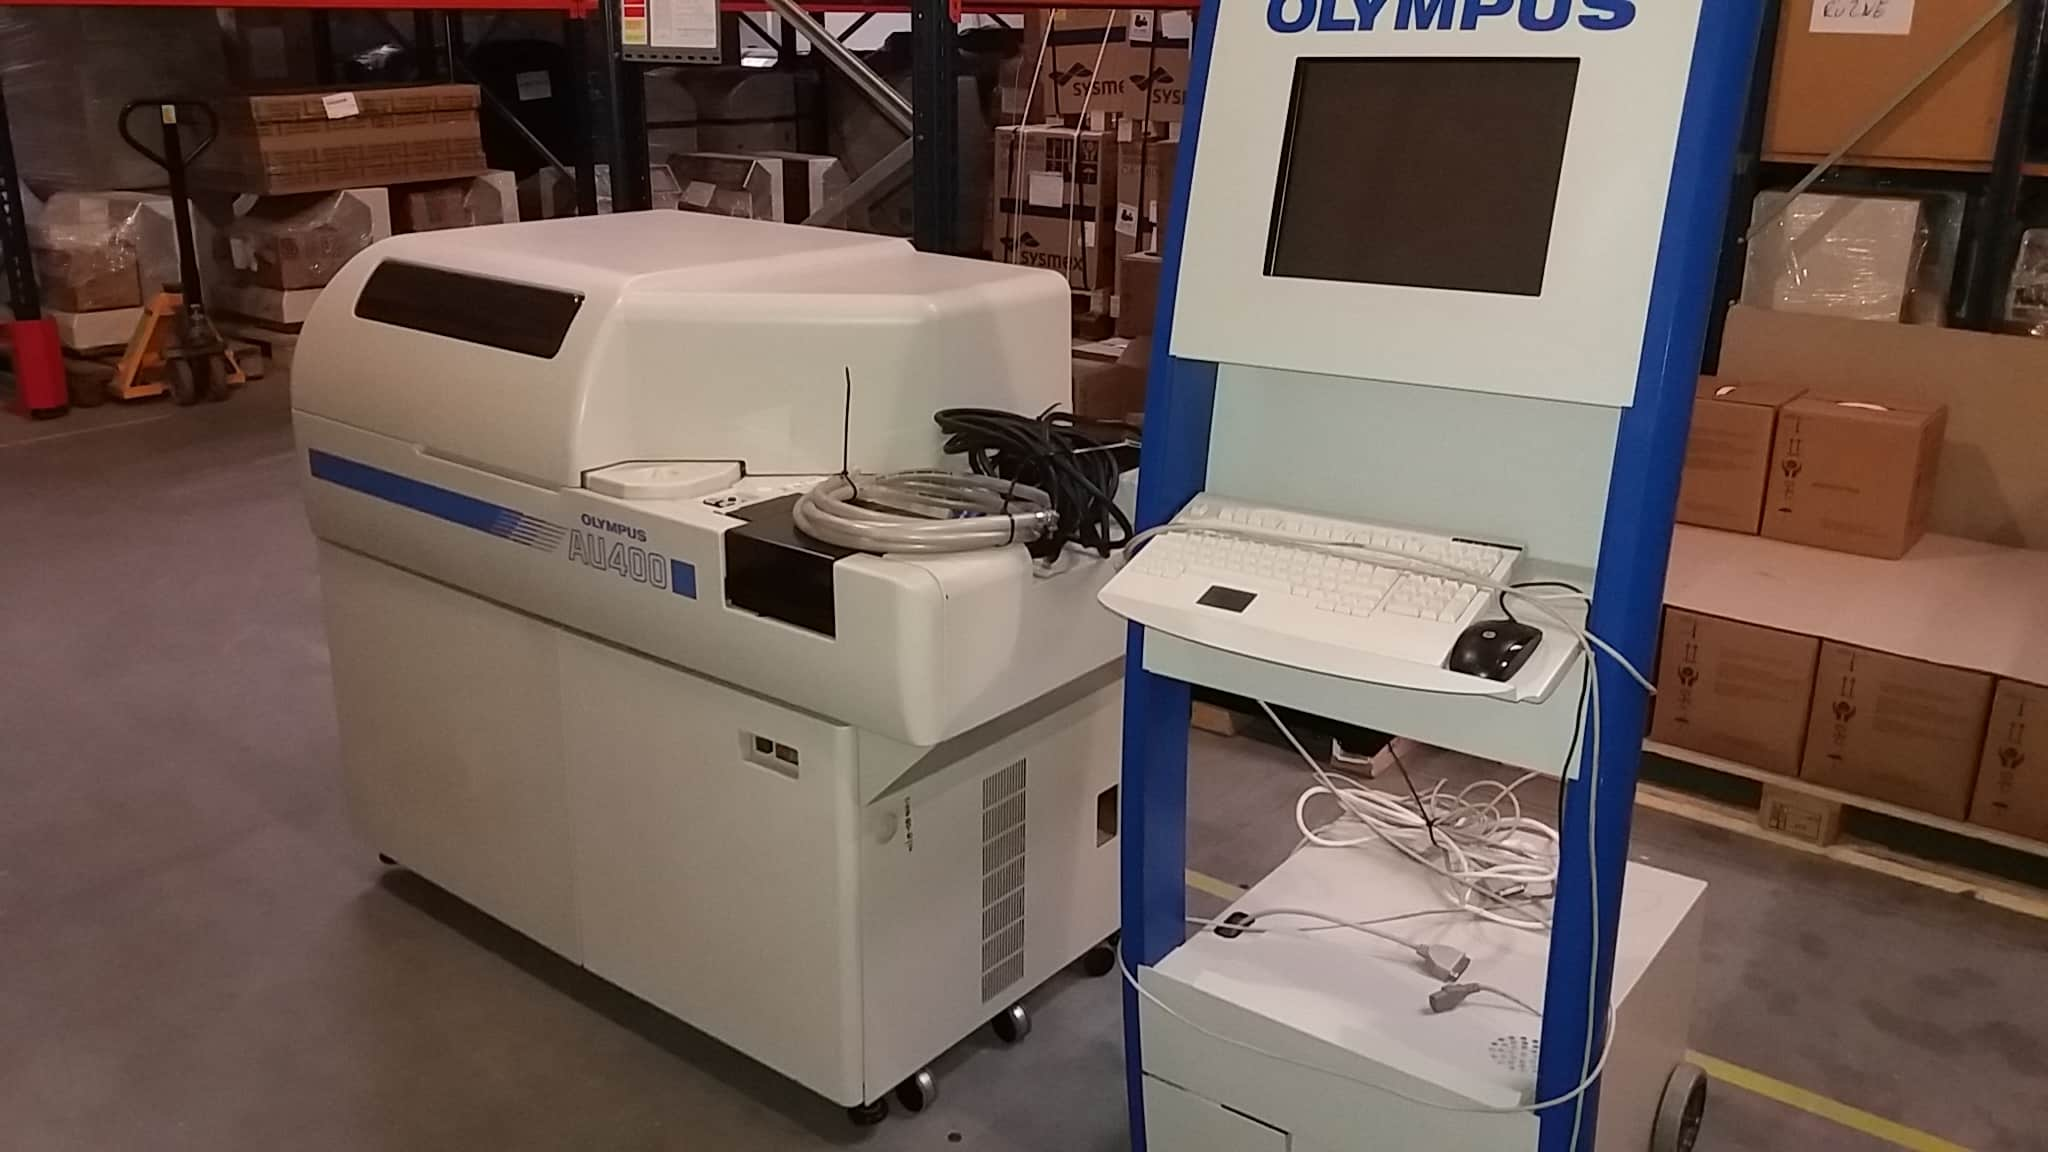 Beckman Coulter Olympus AU 400